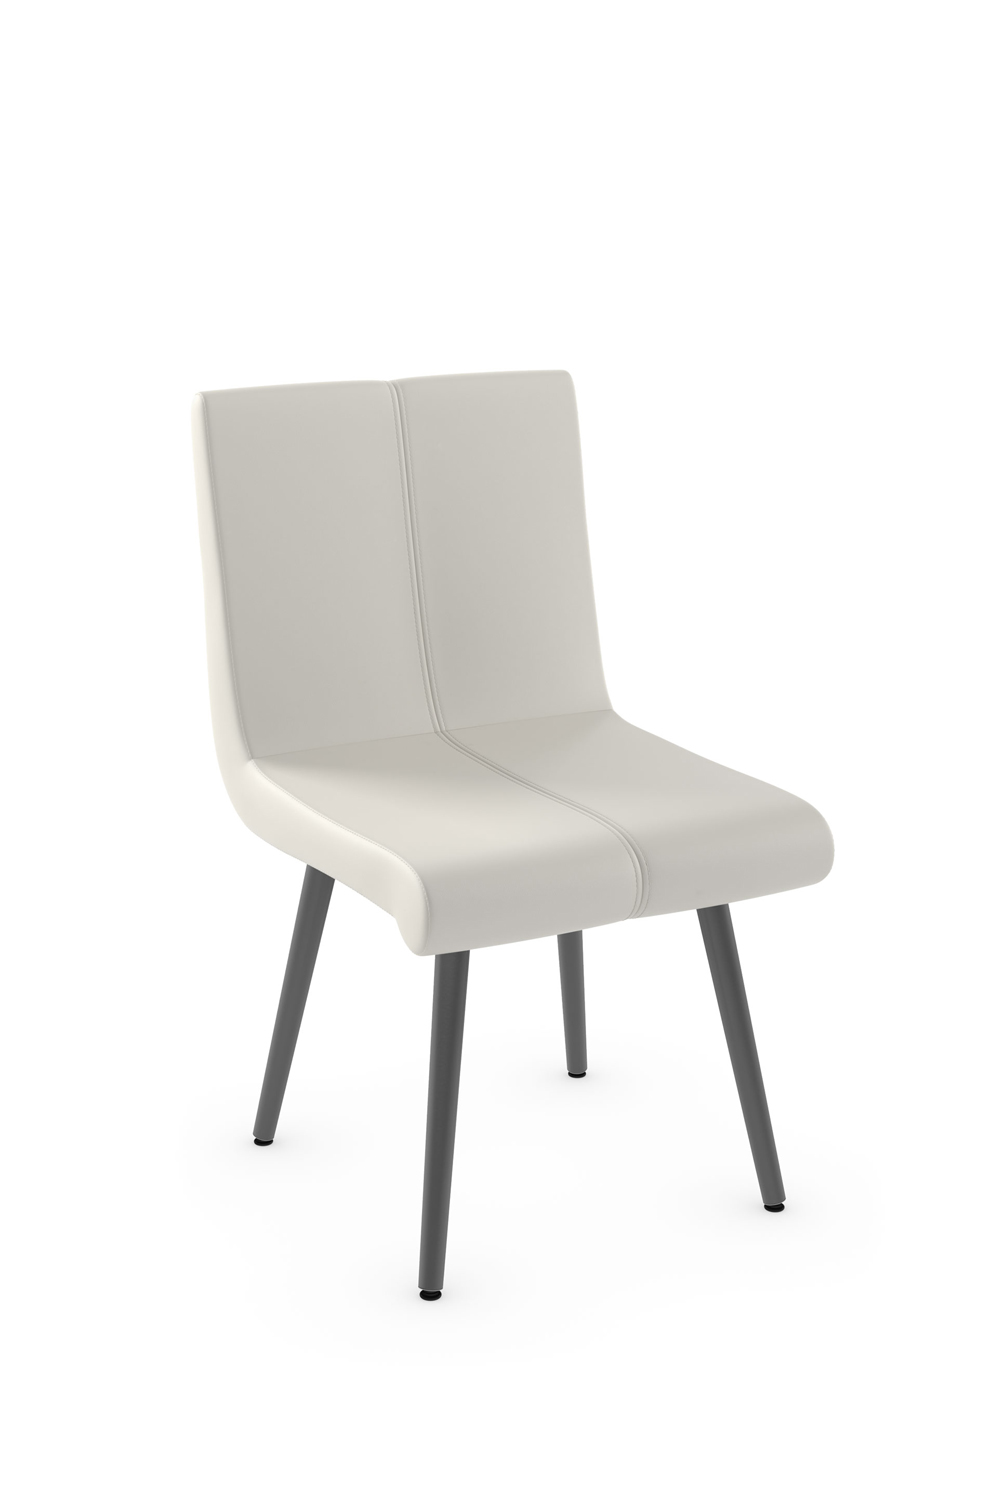 Regent Dining Chair with Upholstered Back and Seat